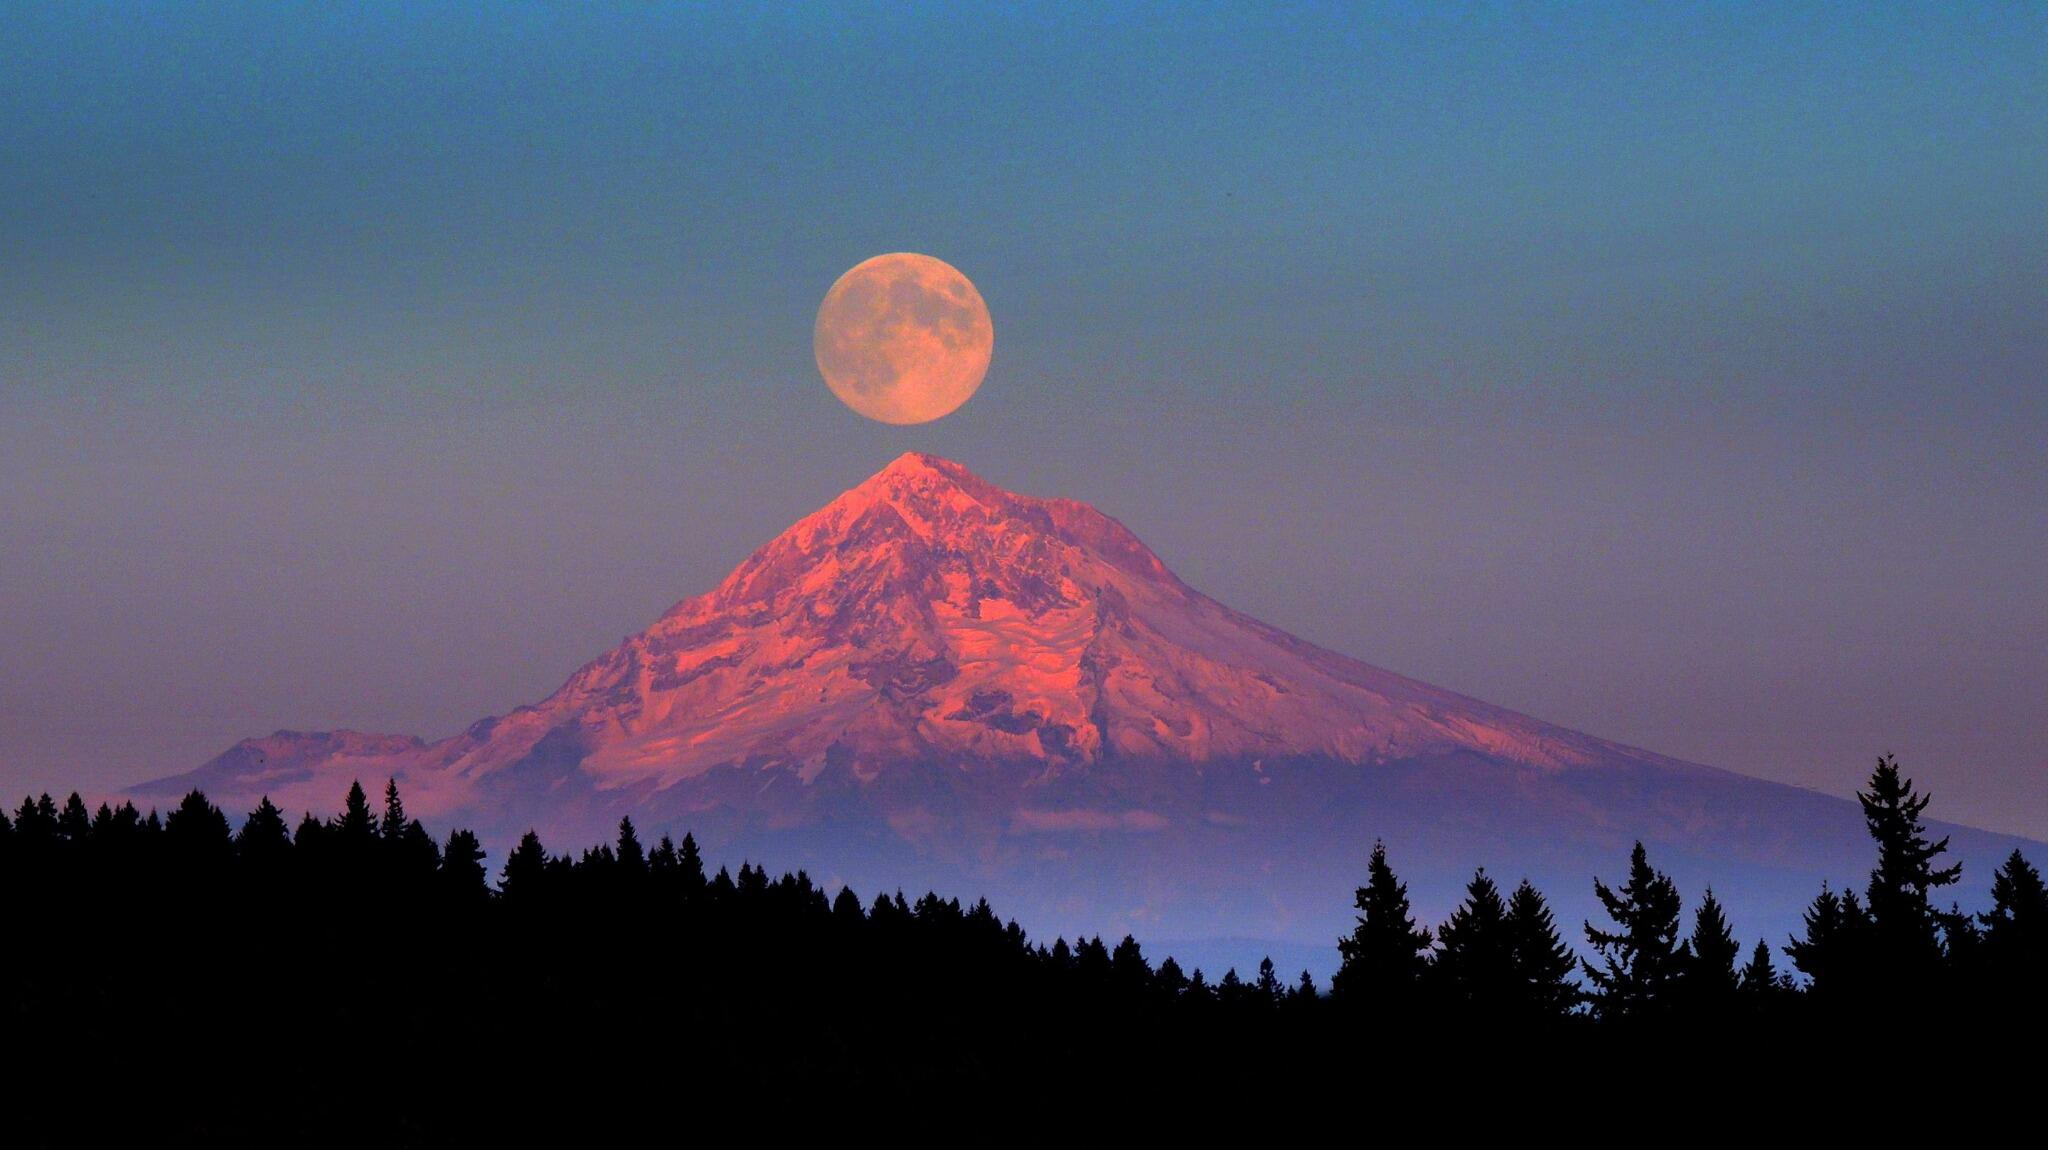 Gorgeous! Full moon rising over Mt. Hood: http://t.co/AQeOPFEsYk